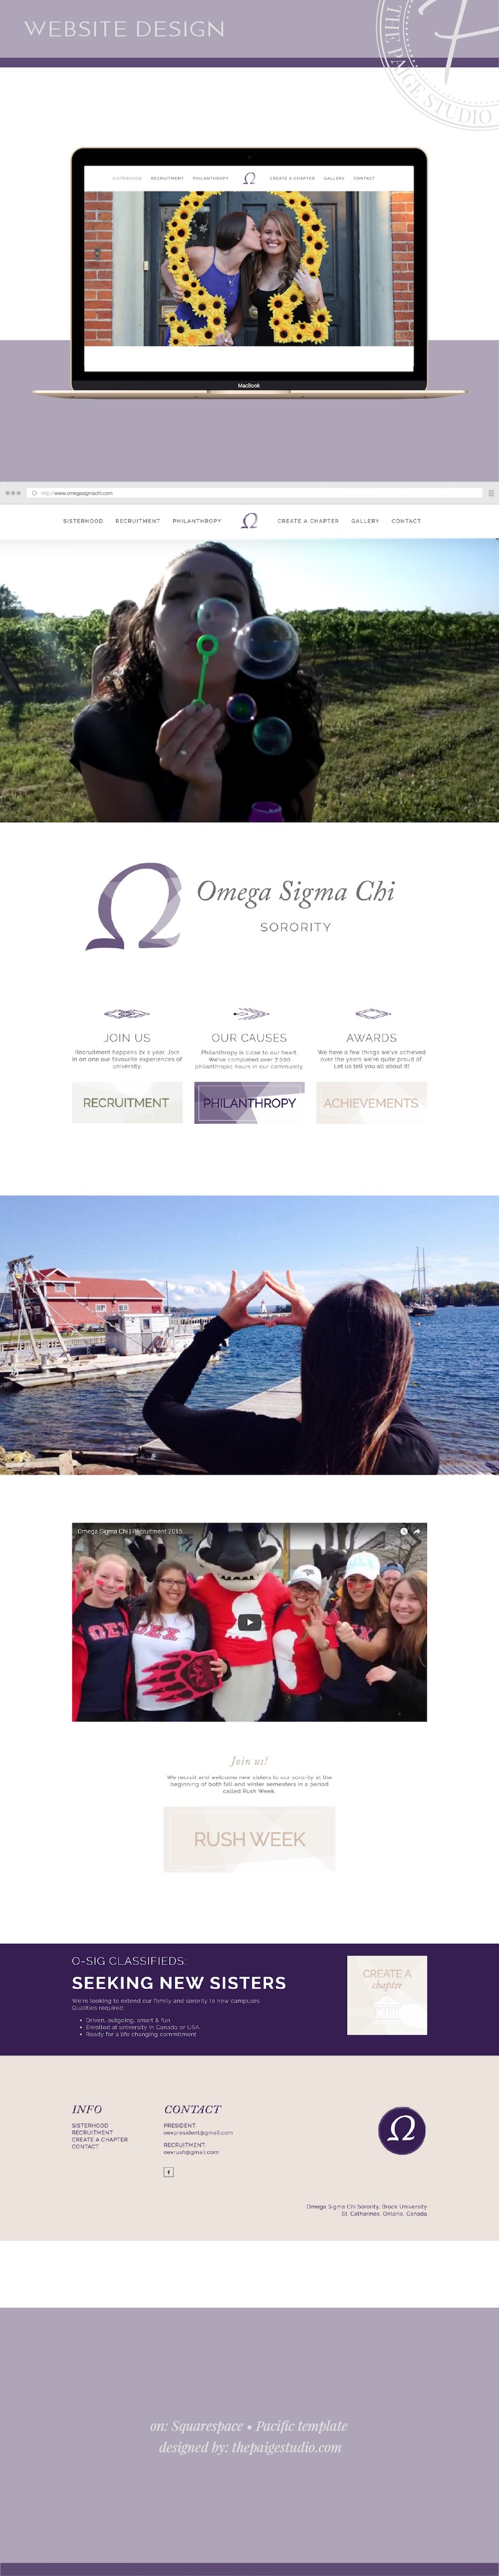 sorority website design project with omega sigma chi and the paige studio